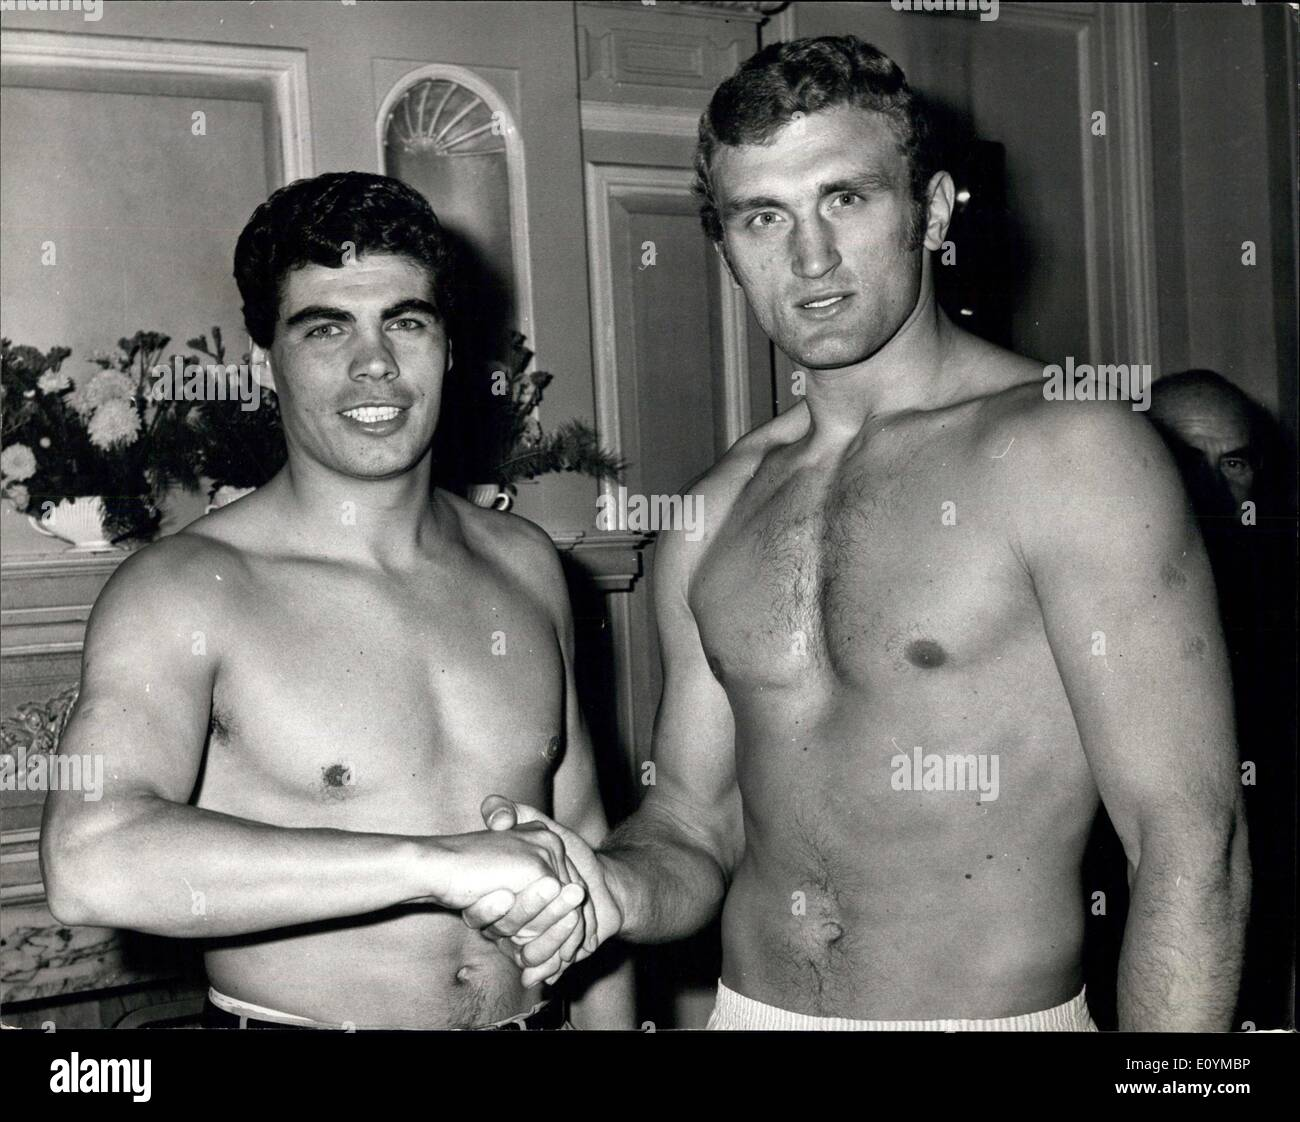 Oct. 06, 1970 - Weigh-In Joe Bugner V Eduardo Corletti At the Horseshoe Club for tonight fight at Albert HAll: The Weigh-in took place this morning at the Horseshoe Club, Tottenham Court Road, for this evening heavyweight right between Britain's Joe Bugner and Eduardo Corletti of Argentina at the Royal Albert Hall. Picture Shows: Seen Shaking hands after the weigh -in Corletti, left and Joe Bugner. - Stock Image